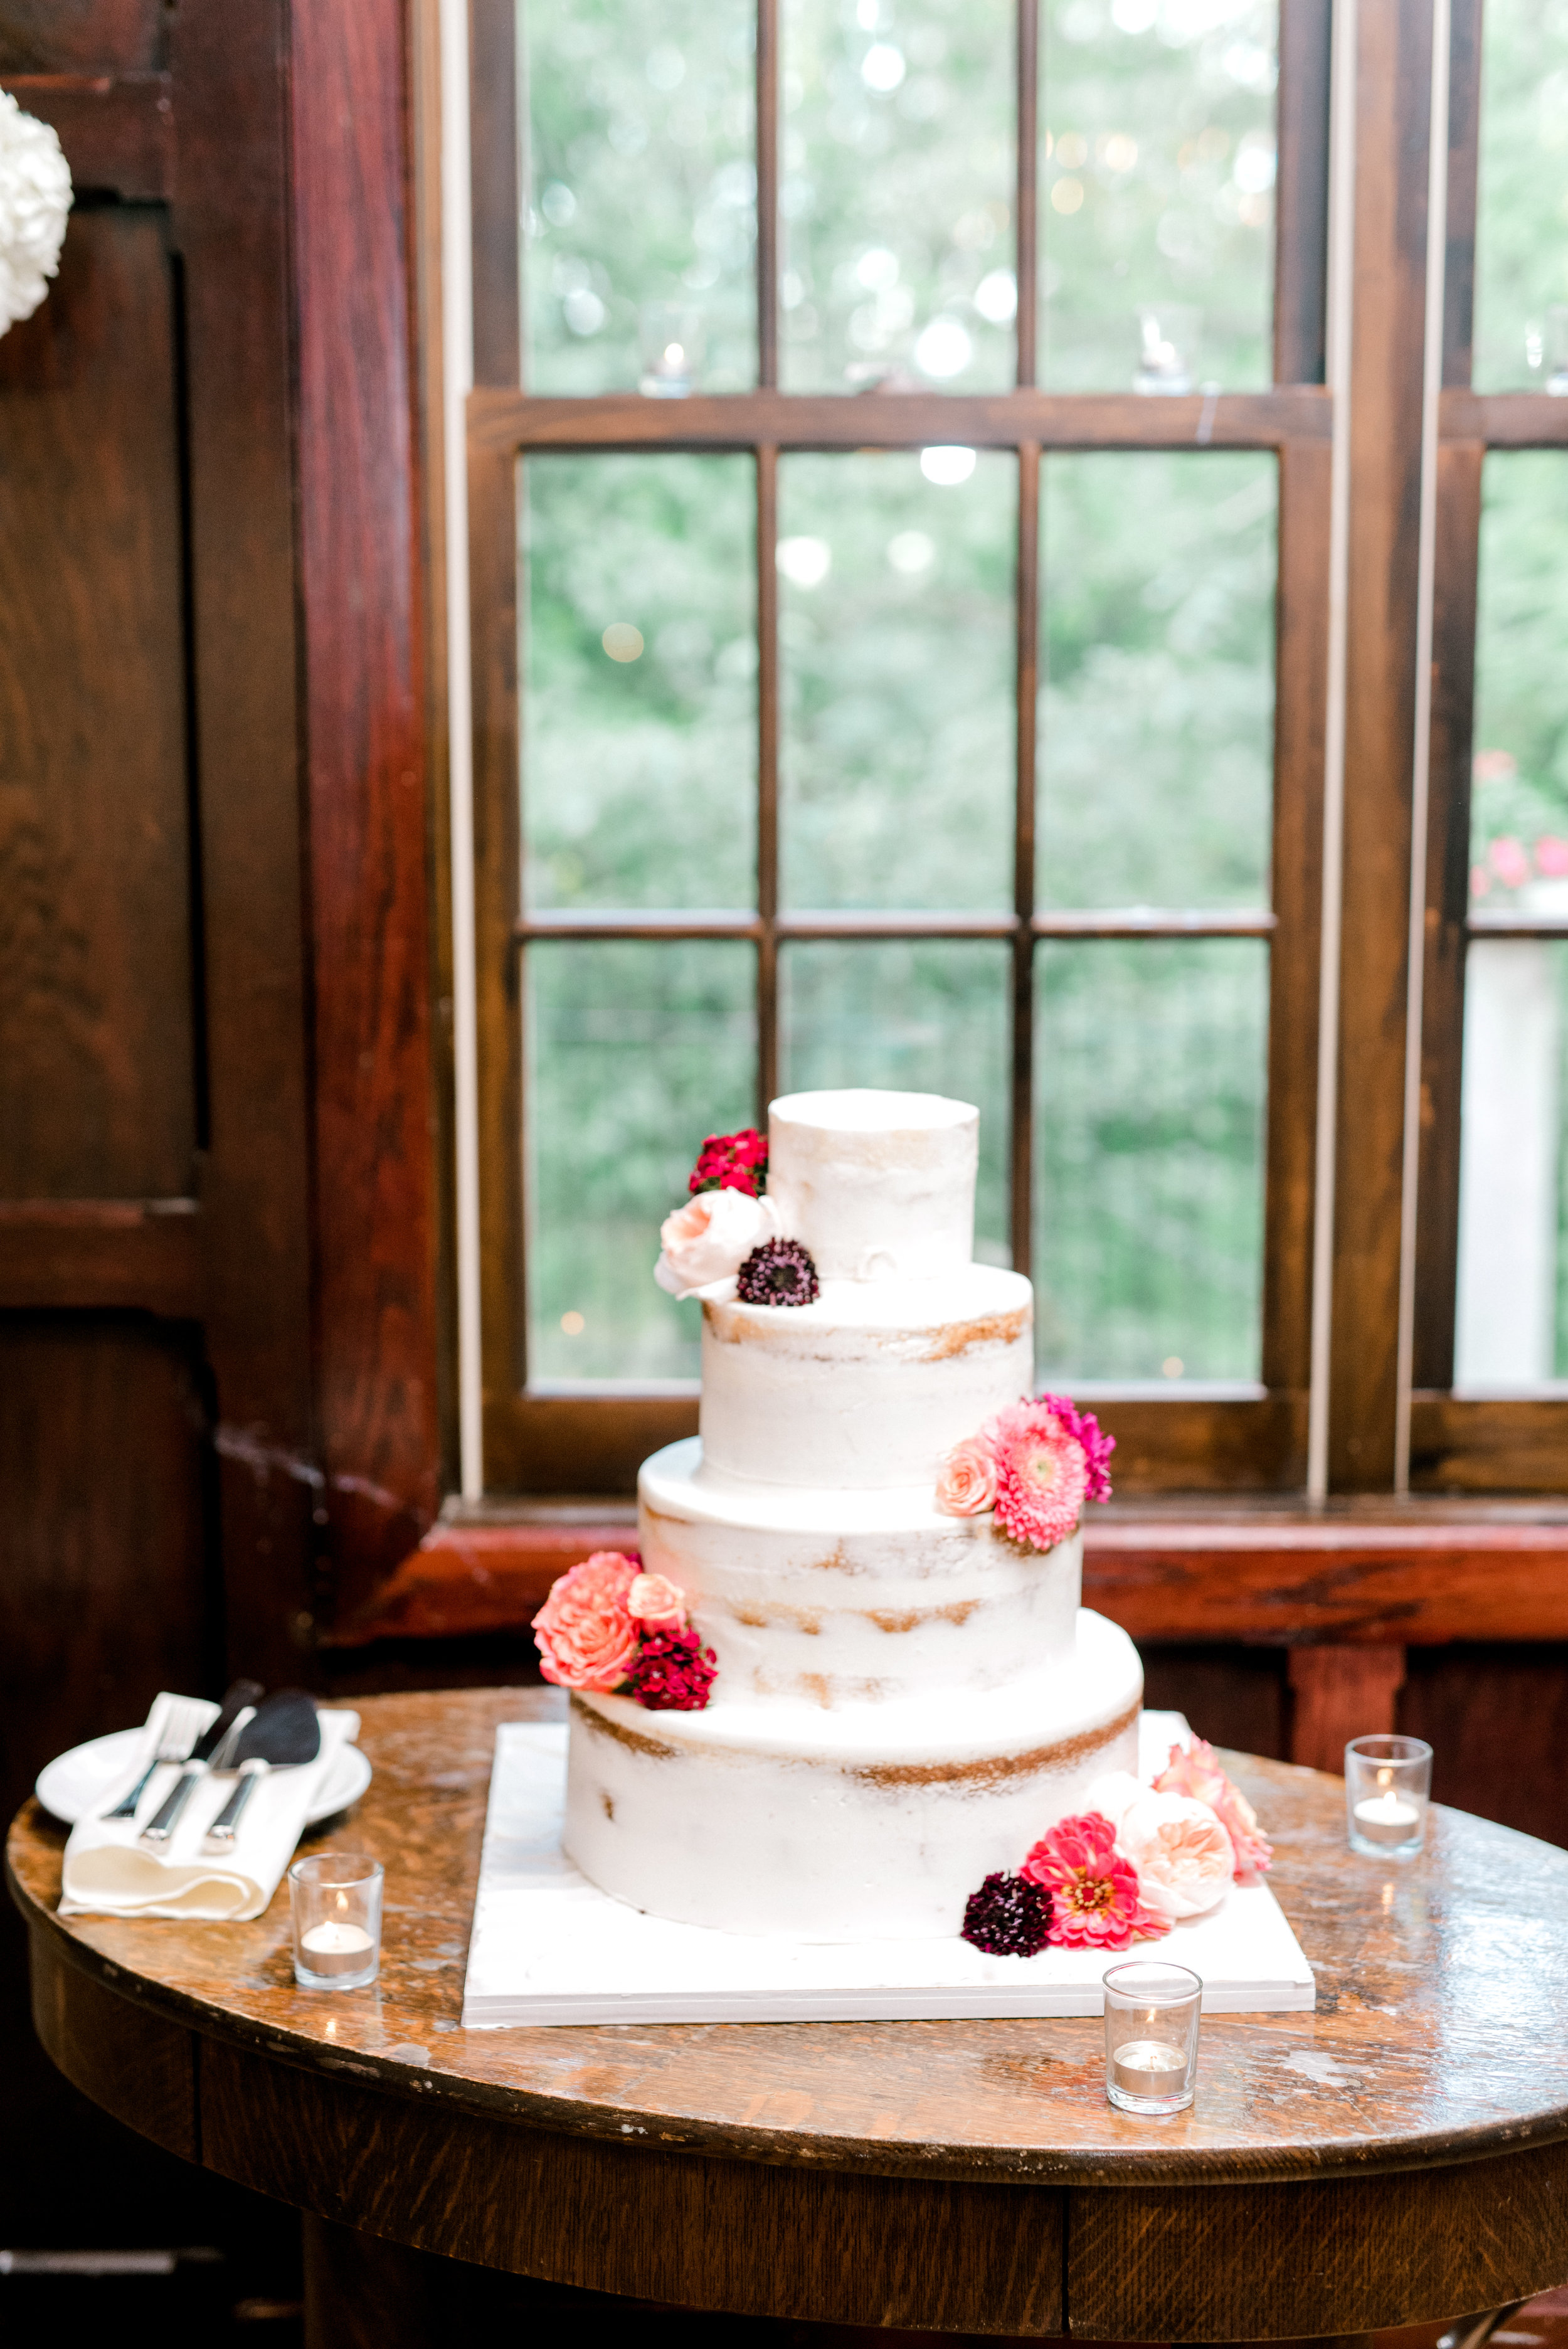 This simple naked cake with pops of pink flowers at Hotel du Village has us dreaming of modern summer weddings.